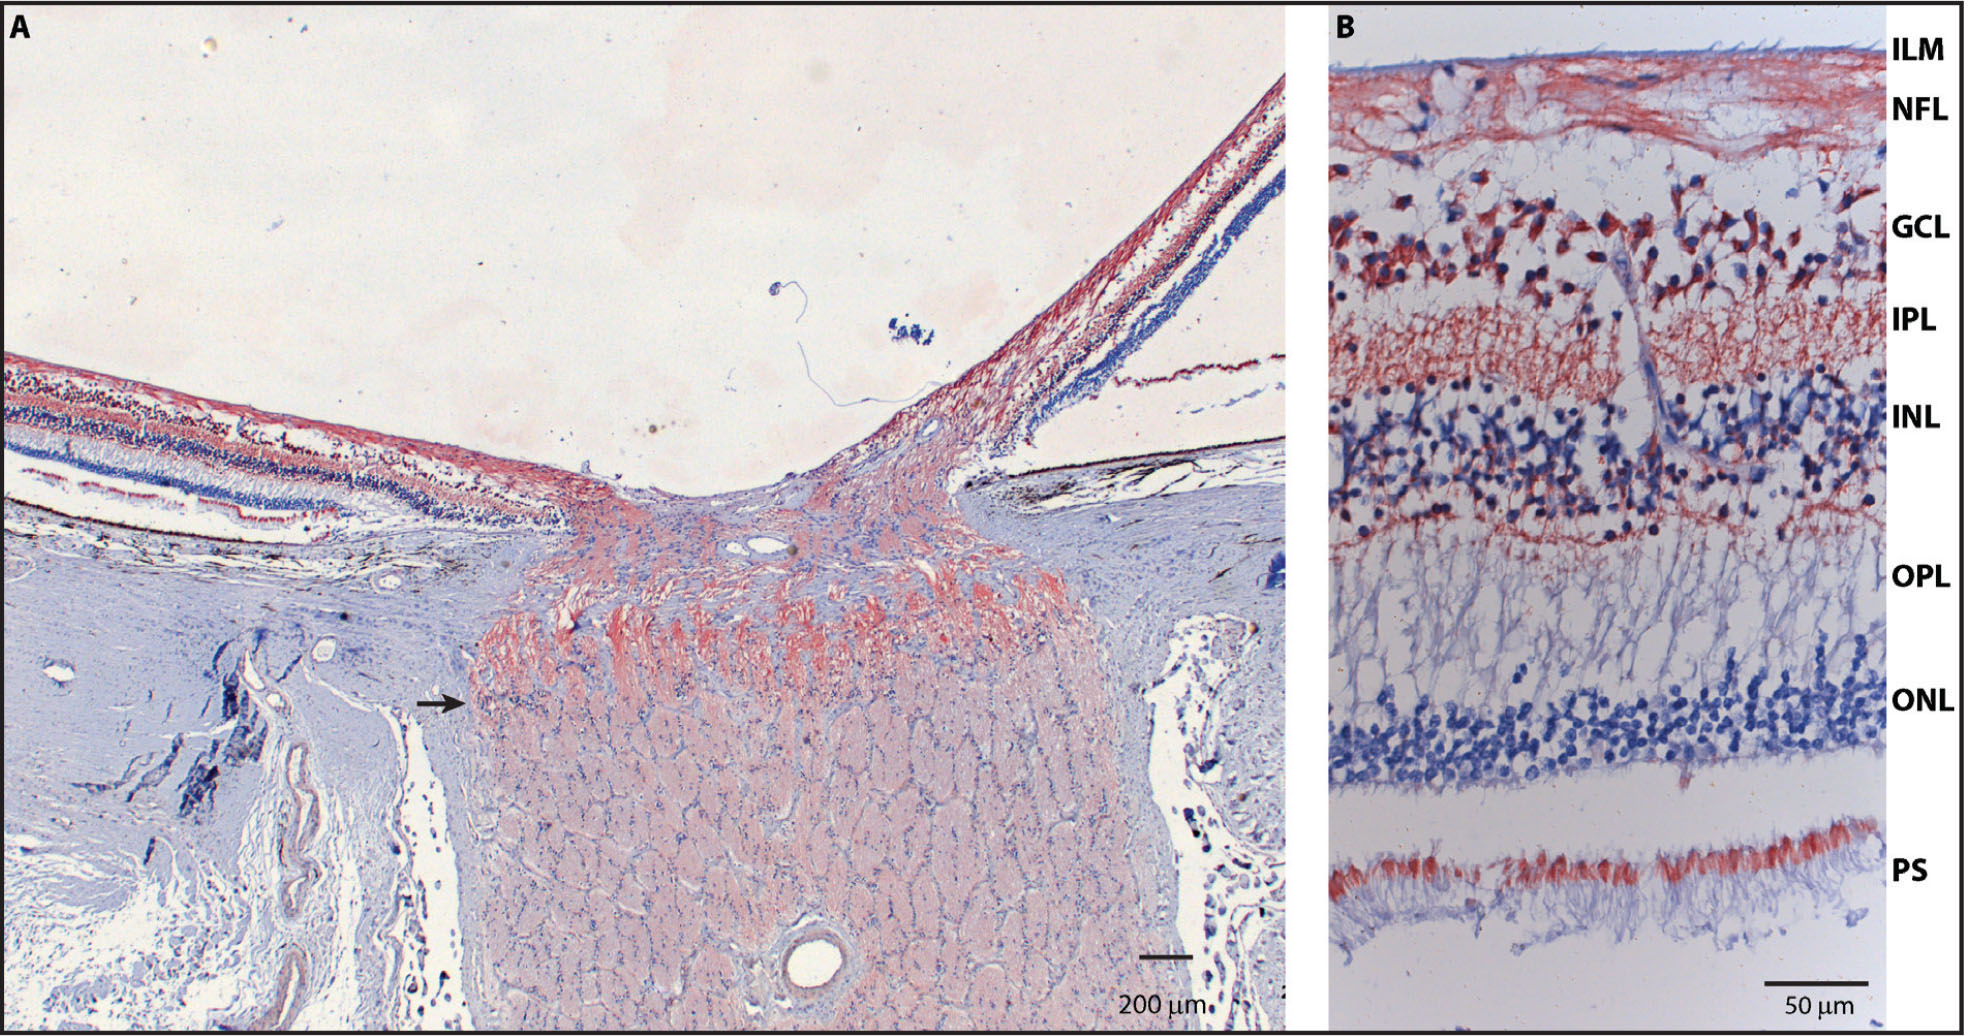 Mitochondrial distribution in the eye. A section of a human eye was stained using antibodies raised against subunit IV of cytochrome C oxidase. The brownish color indicates the presence of mitochondria. (A) Please note the abrupt change in mitochondrial content (arrow) once the optic nerve is formed by the retinal ganglion cell axons. (B) Also note the strong mitochondrial staining in the different retinal layers. ILM = inner limiting membrane; NFL = nerve fiber layer; GCL = ganglion cell layer; IPL = inner plexiform layer; INL = inner nuclear layer; OPL = outer plexiform layer; ONL = outer nuclear layer; PS = photoreceptors (Image courtesy of Prof. Peter Meyer, Basel, Switzerland.)